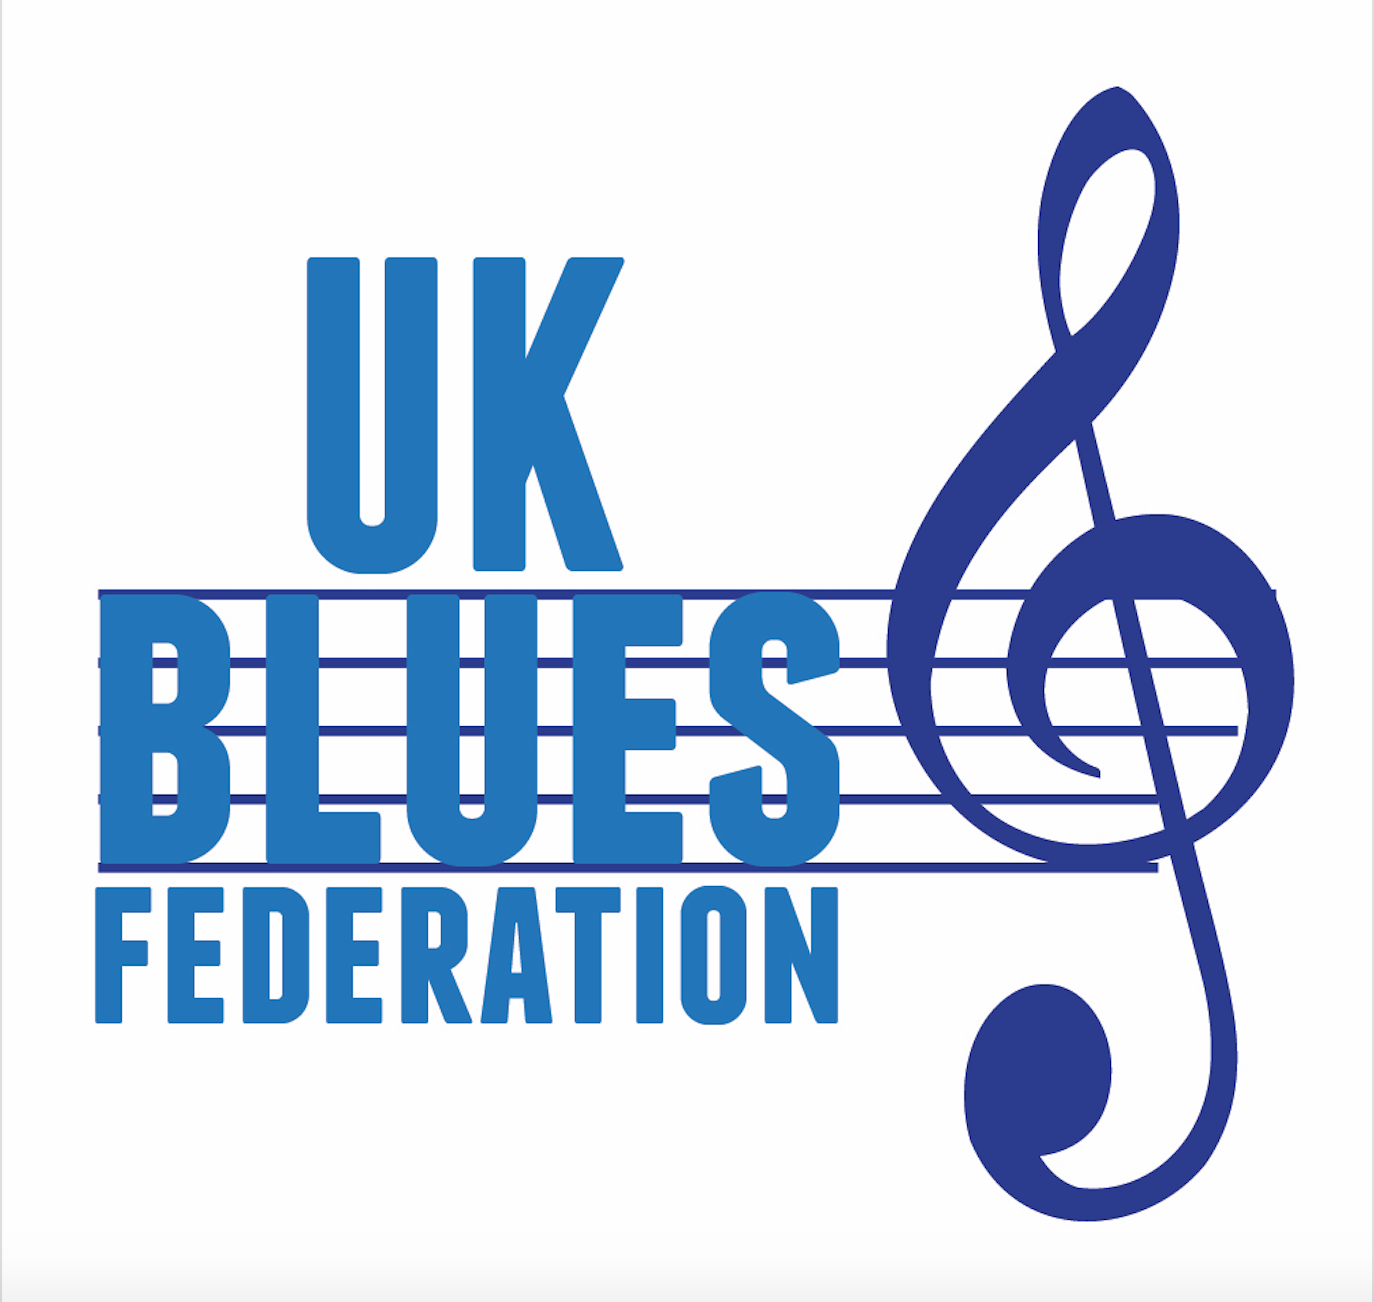 image of the logo for the UK Blues Federation